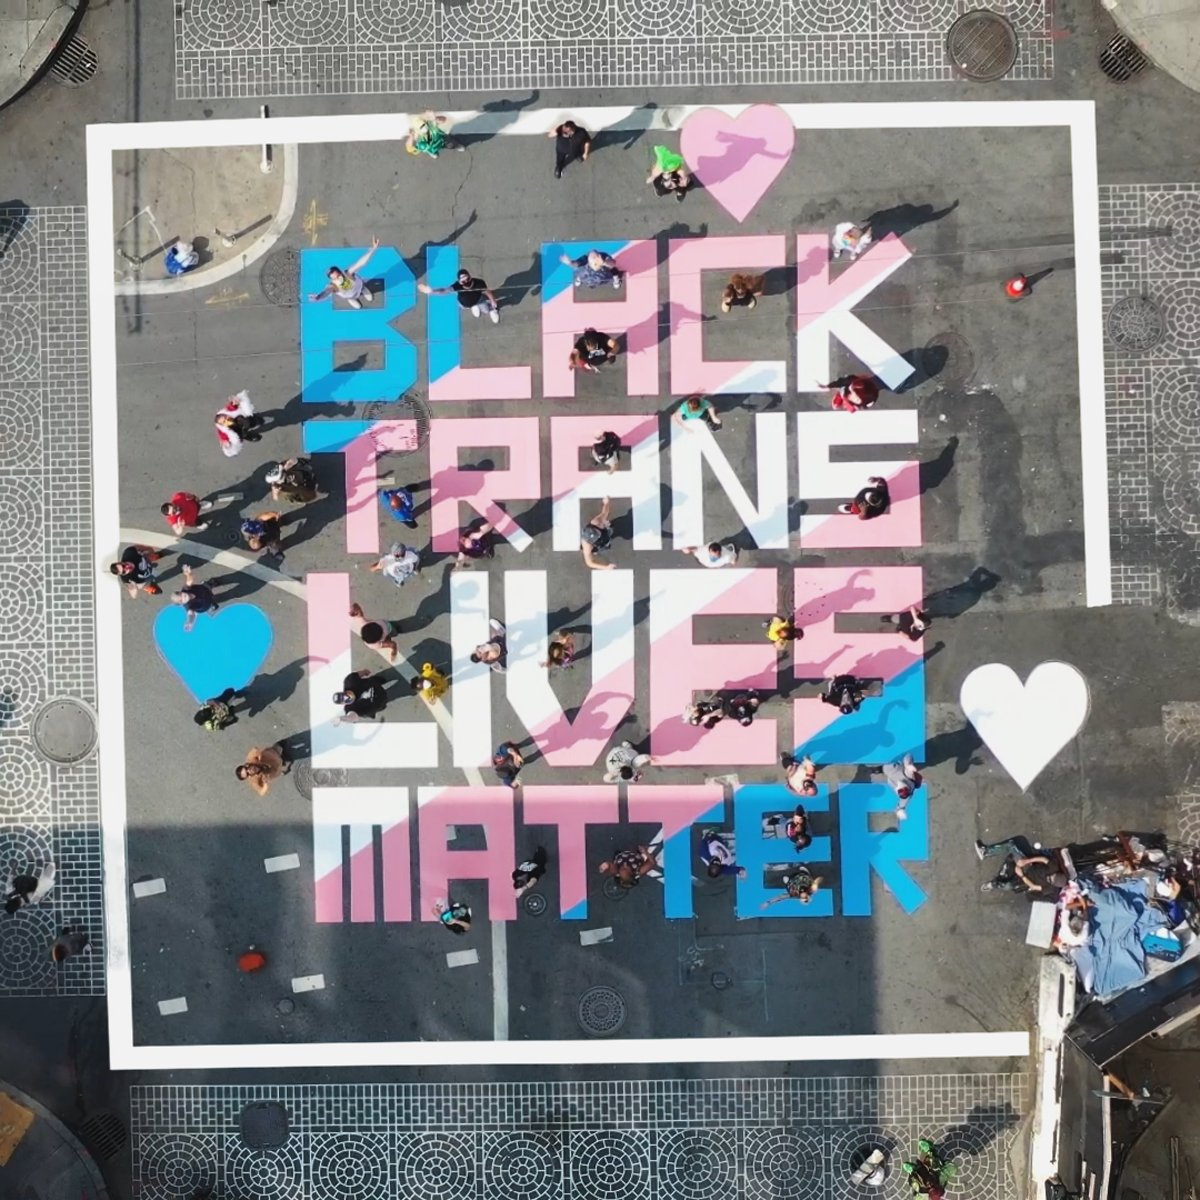 Google Search data shows people in the U.S. are searching for ways to support Black trans lives more than ever before.  Ahead of #TransgenderAwarenessWeek, hear from prominent voices within transgender communities & learn how you can show your support →